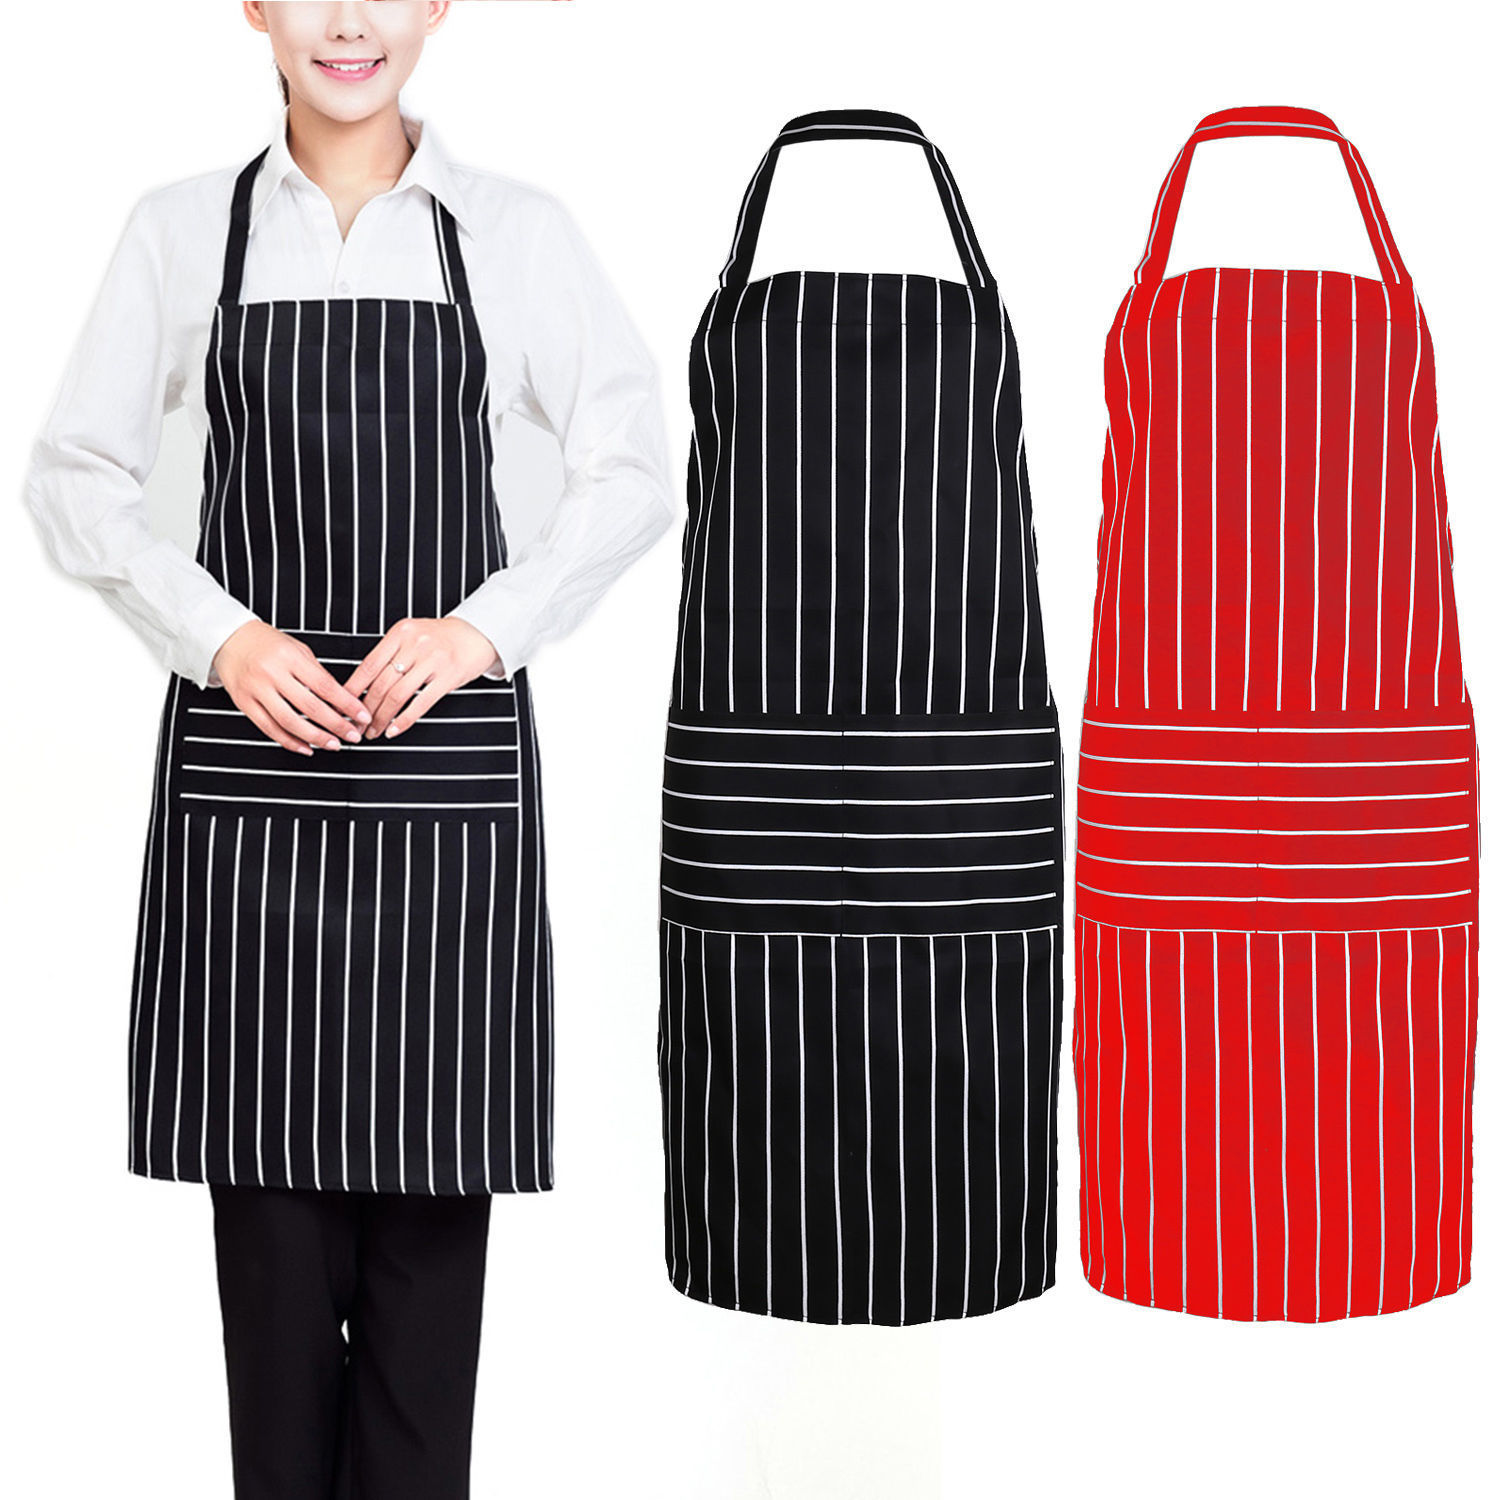 New Women Cooking Kitchen Restaurant Apron Bib New Dress with Pocket Aprons Table Skirt(China (Mainland))